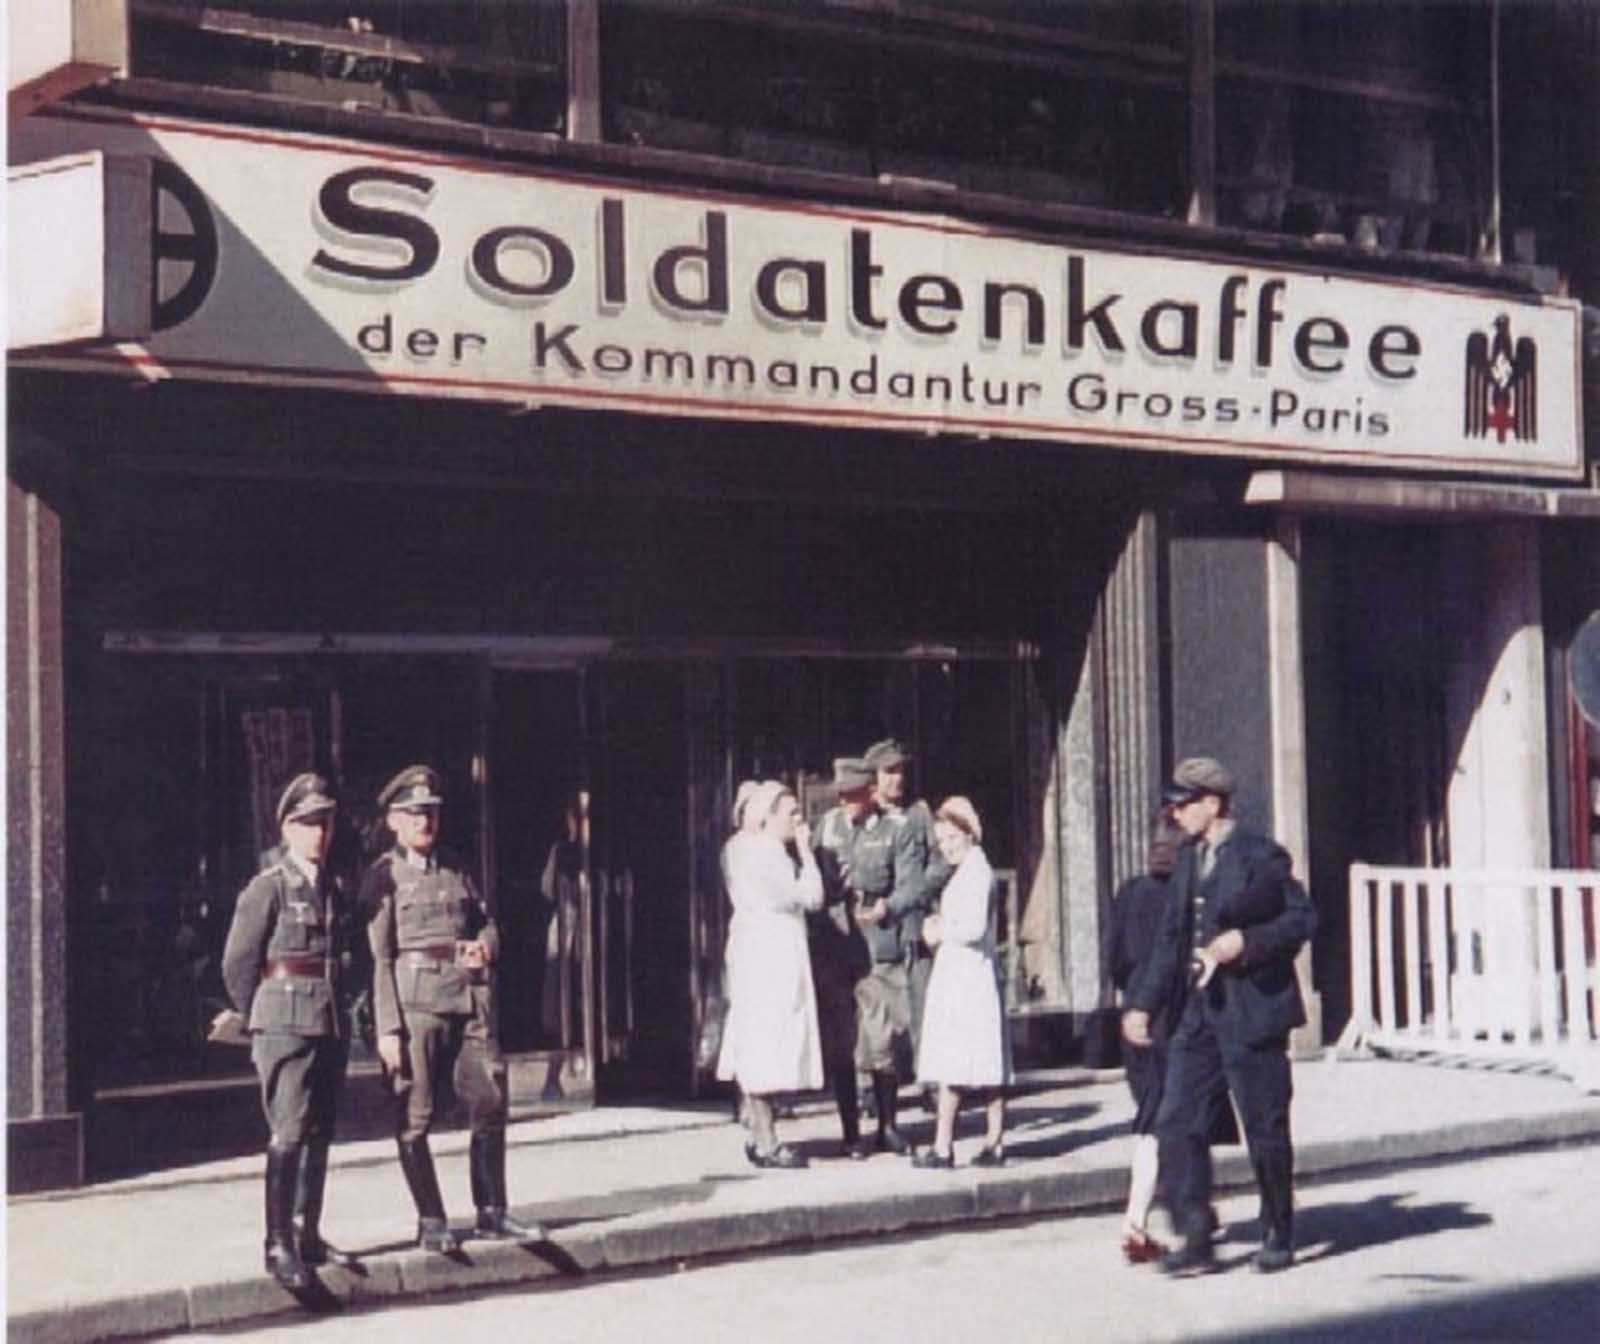 A coffee place for German soldiers. Great place to meet girls.